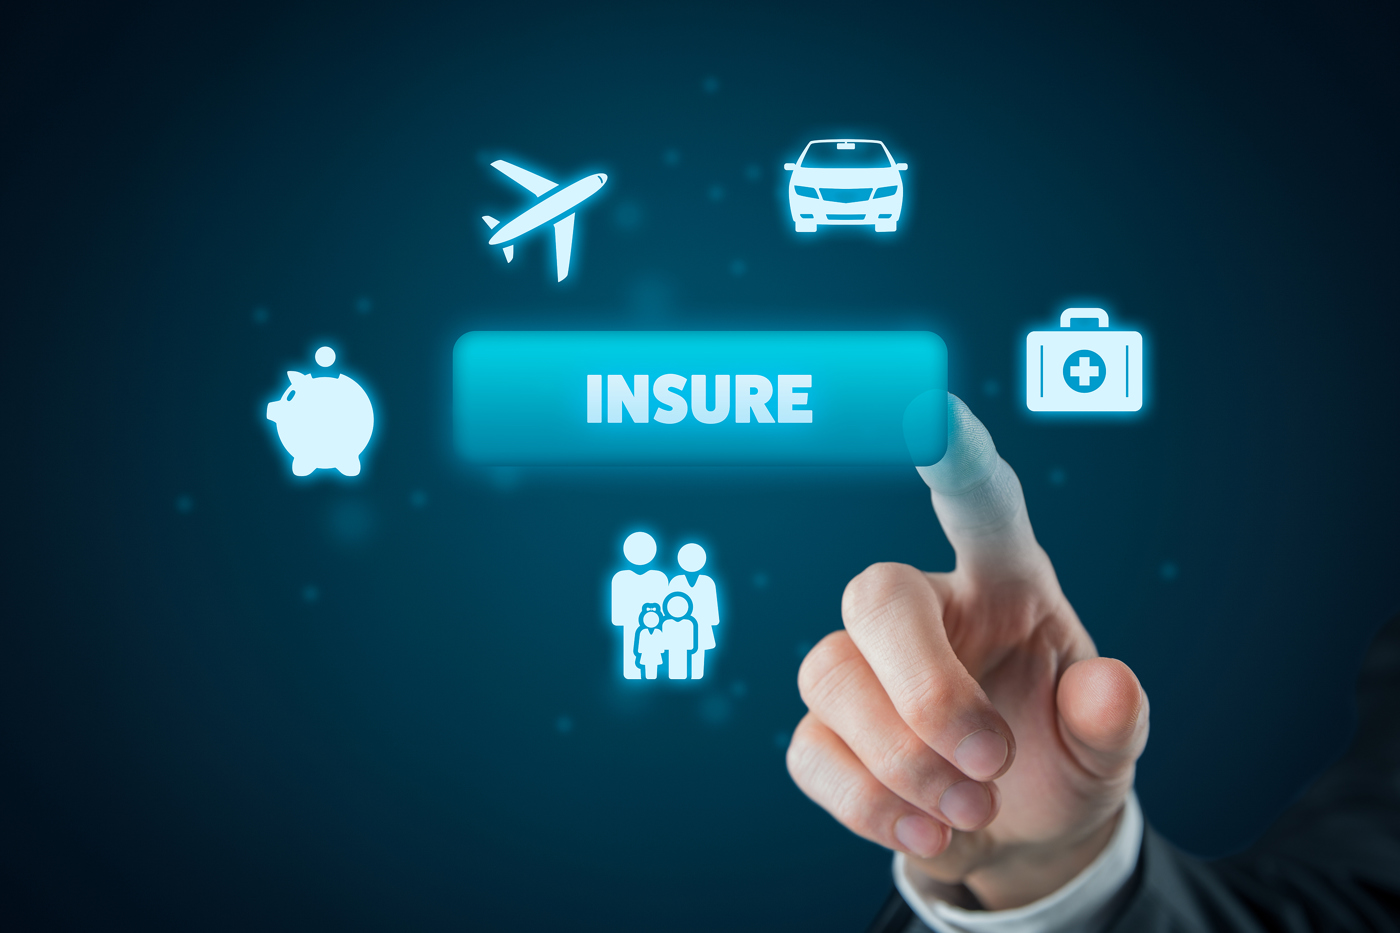 Insurance stocks sector news and analysis